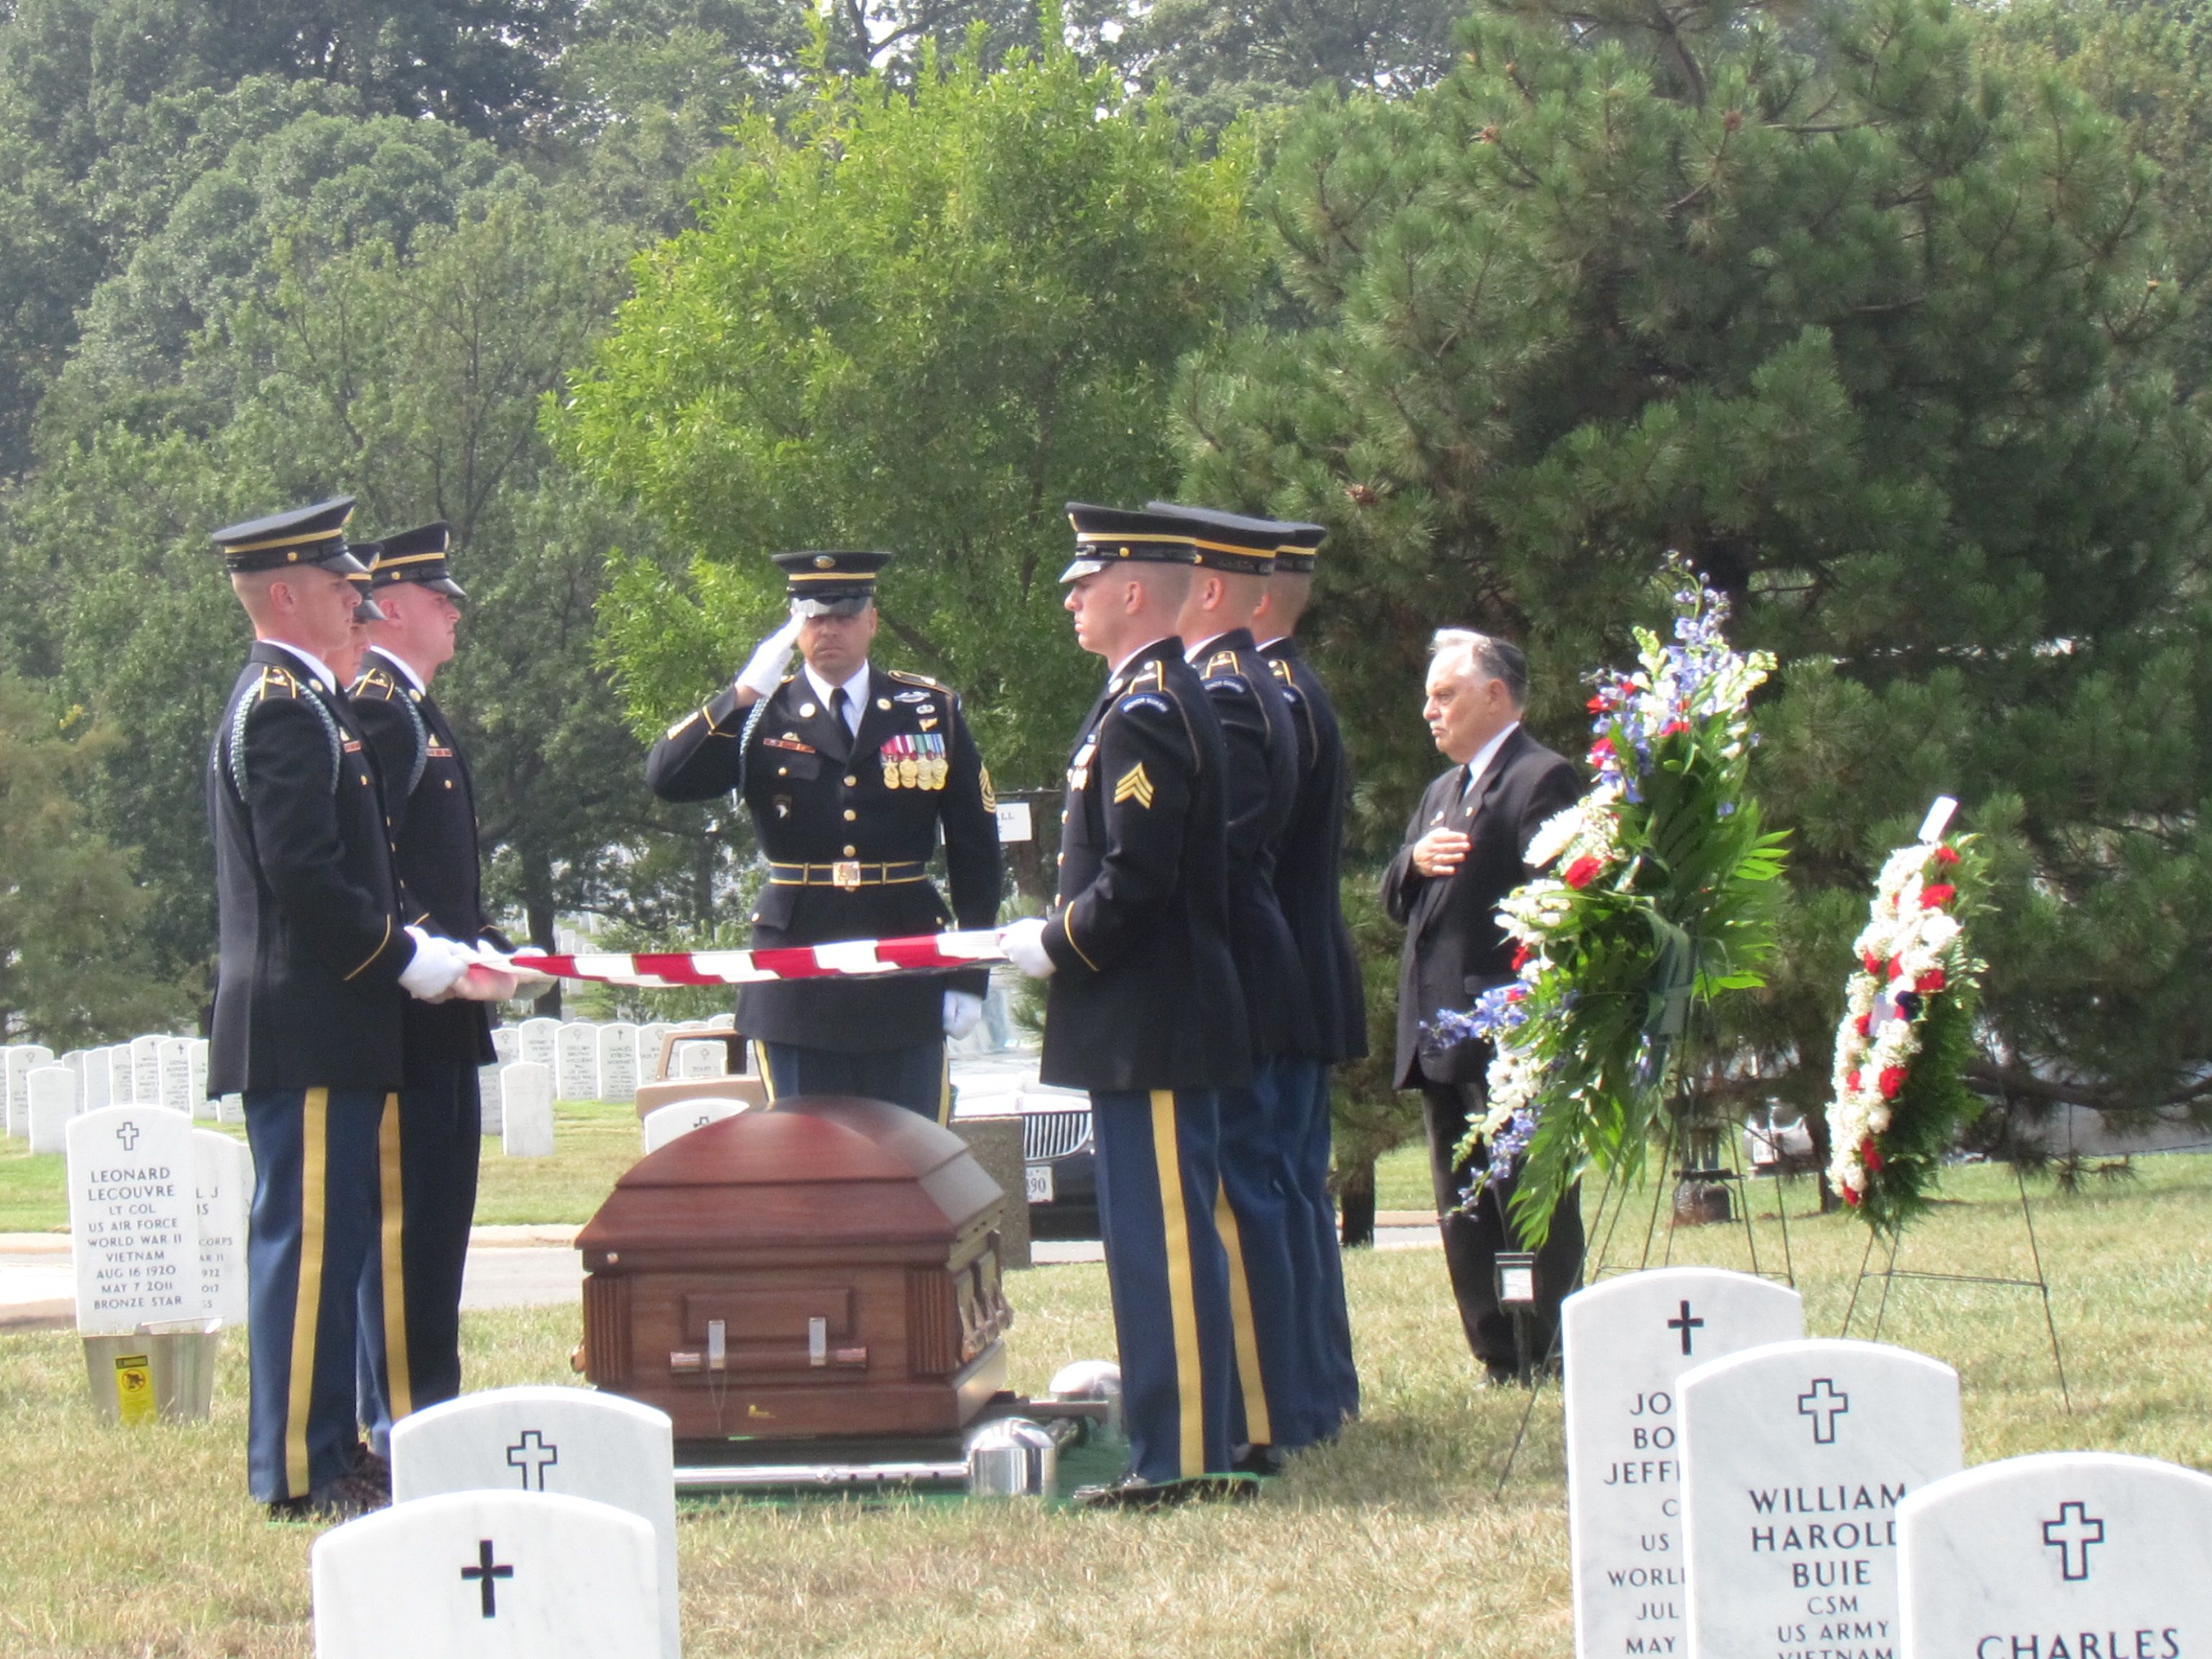 An Army Casket team lays to rest Pfc. Bernard Gavrin at Arlington National Cemetery on Sept. 12 2014 while Rabbi Marvin Bash looks on. (Ron Kampeas)